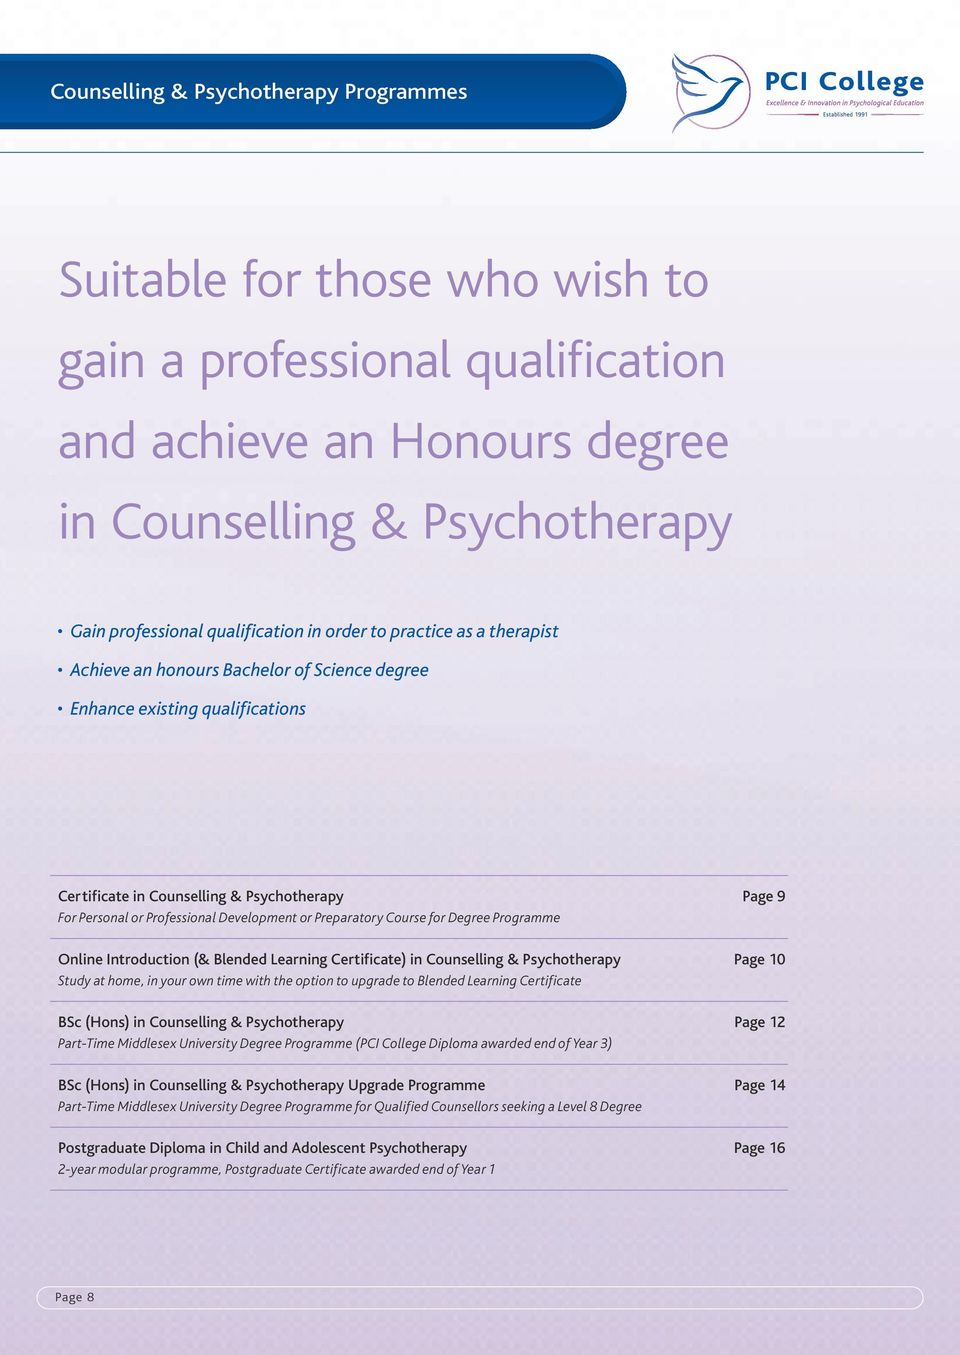 Development or Preparatory Course for Degree Programme Online Introduction (& Blended Learning Certificate) in Counselling & Psychotherapy Page 10 Study at home, in your own time with the option to